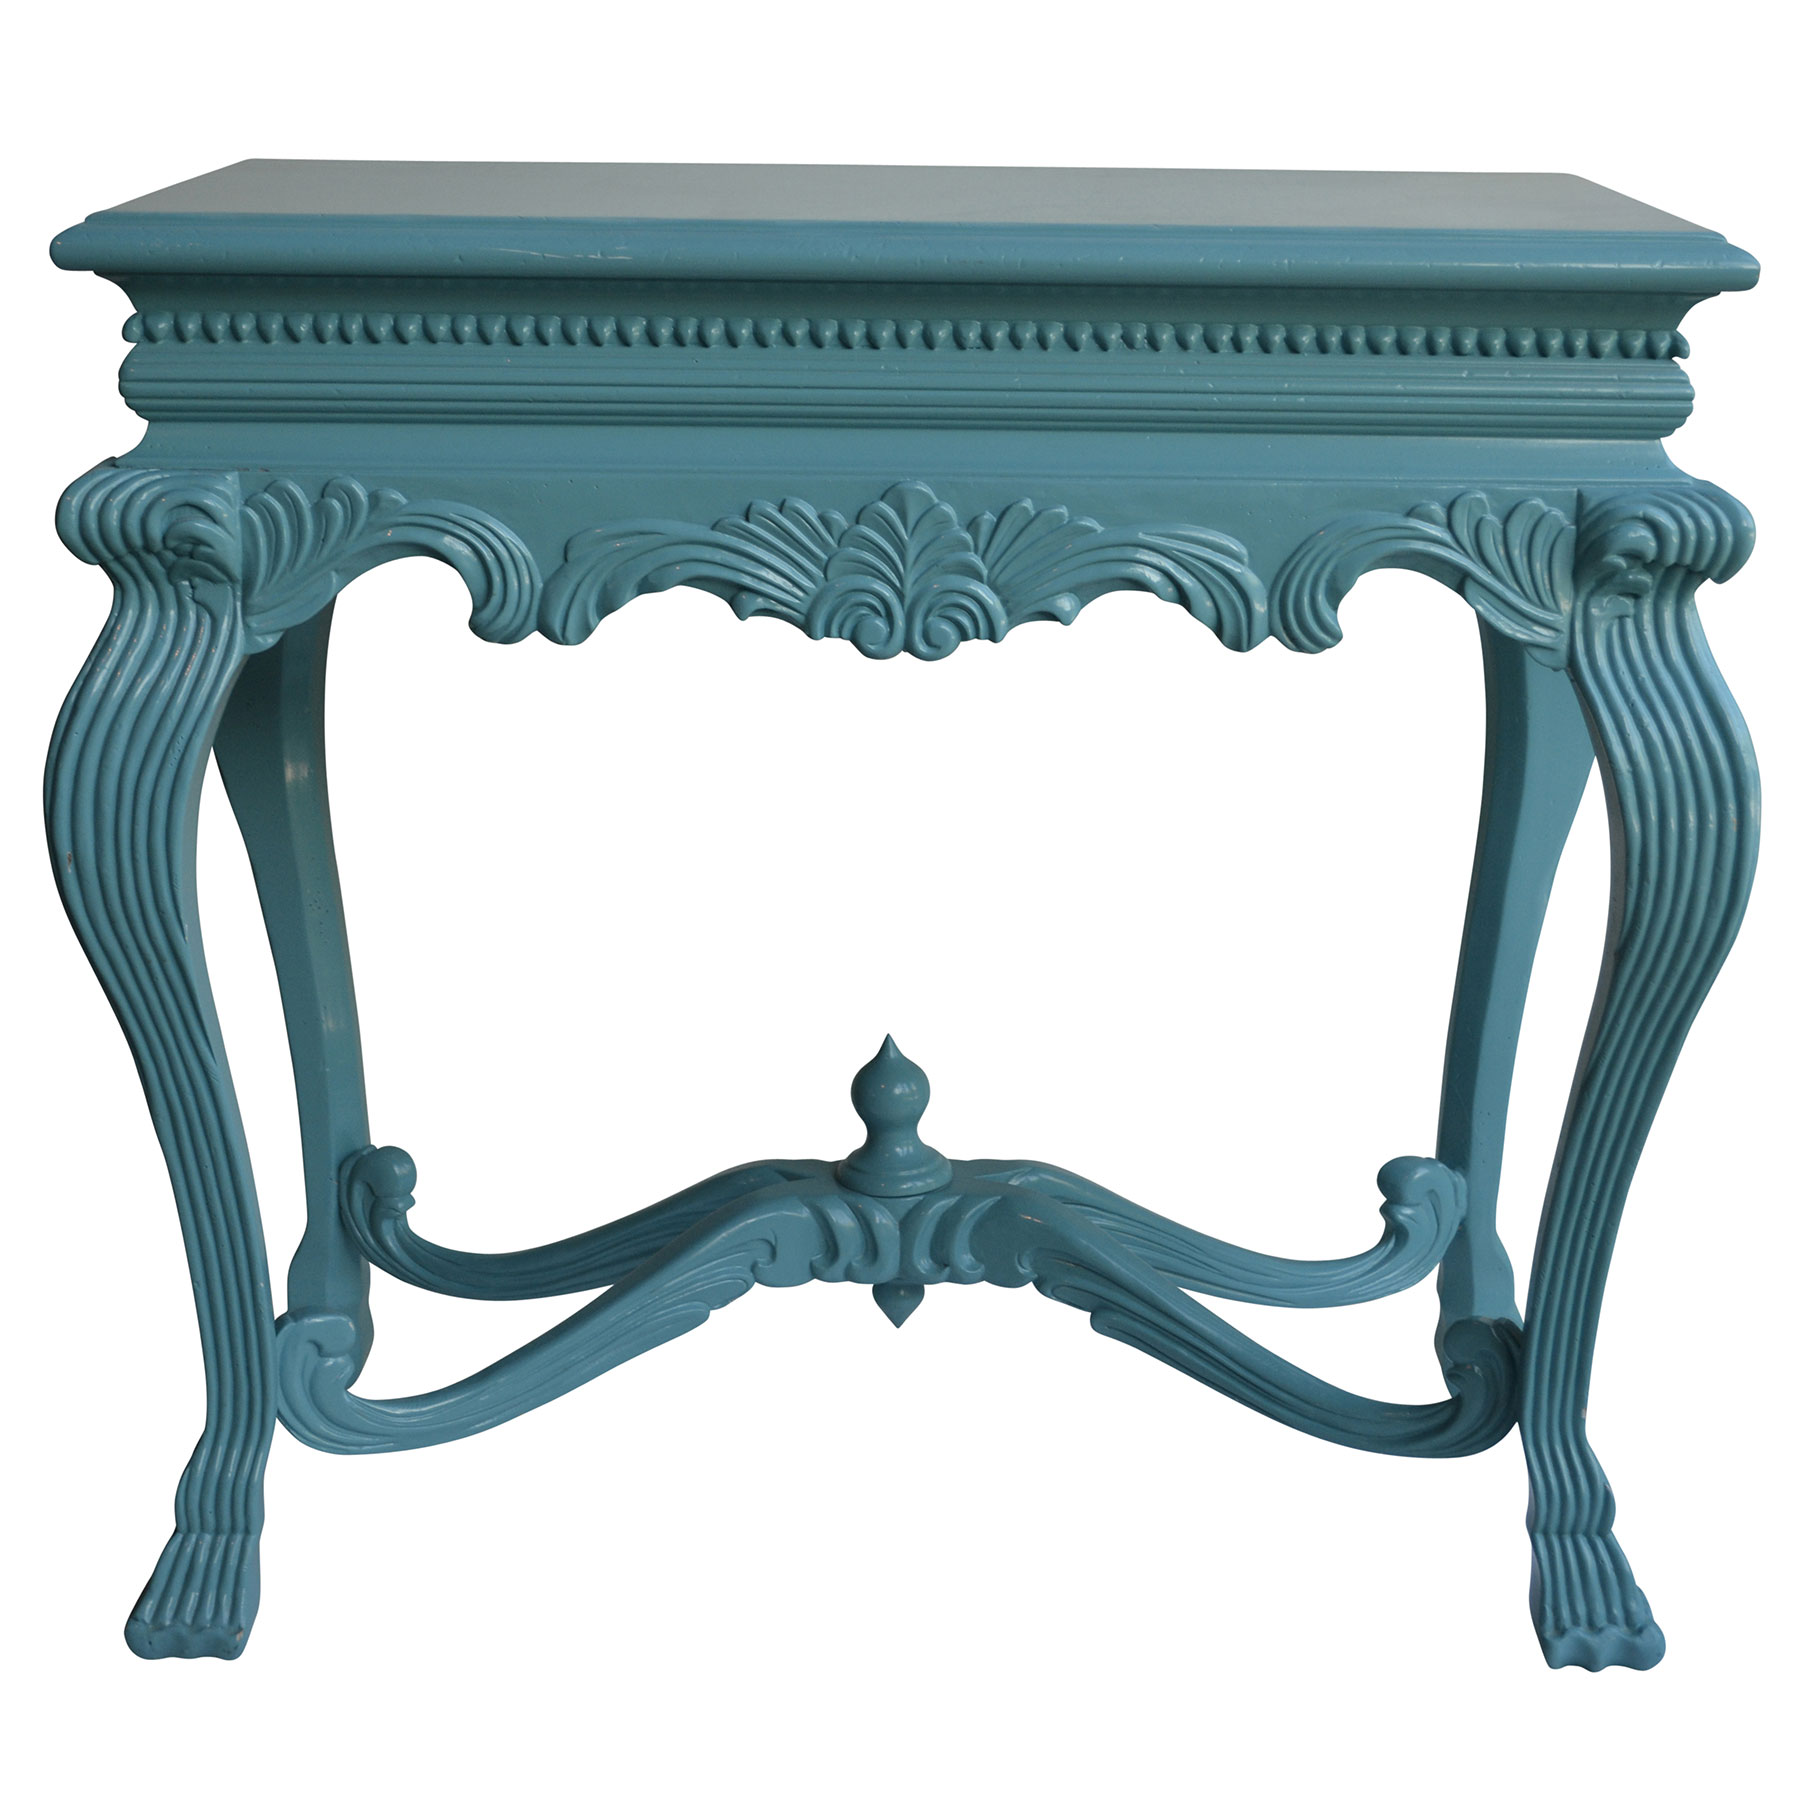 Tantelizing Teal Console Table